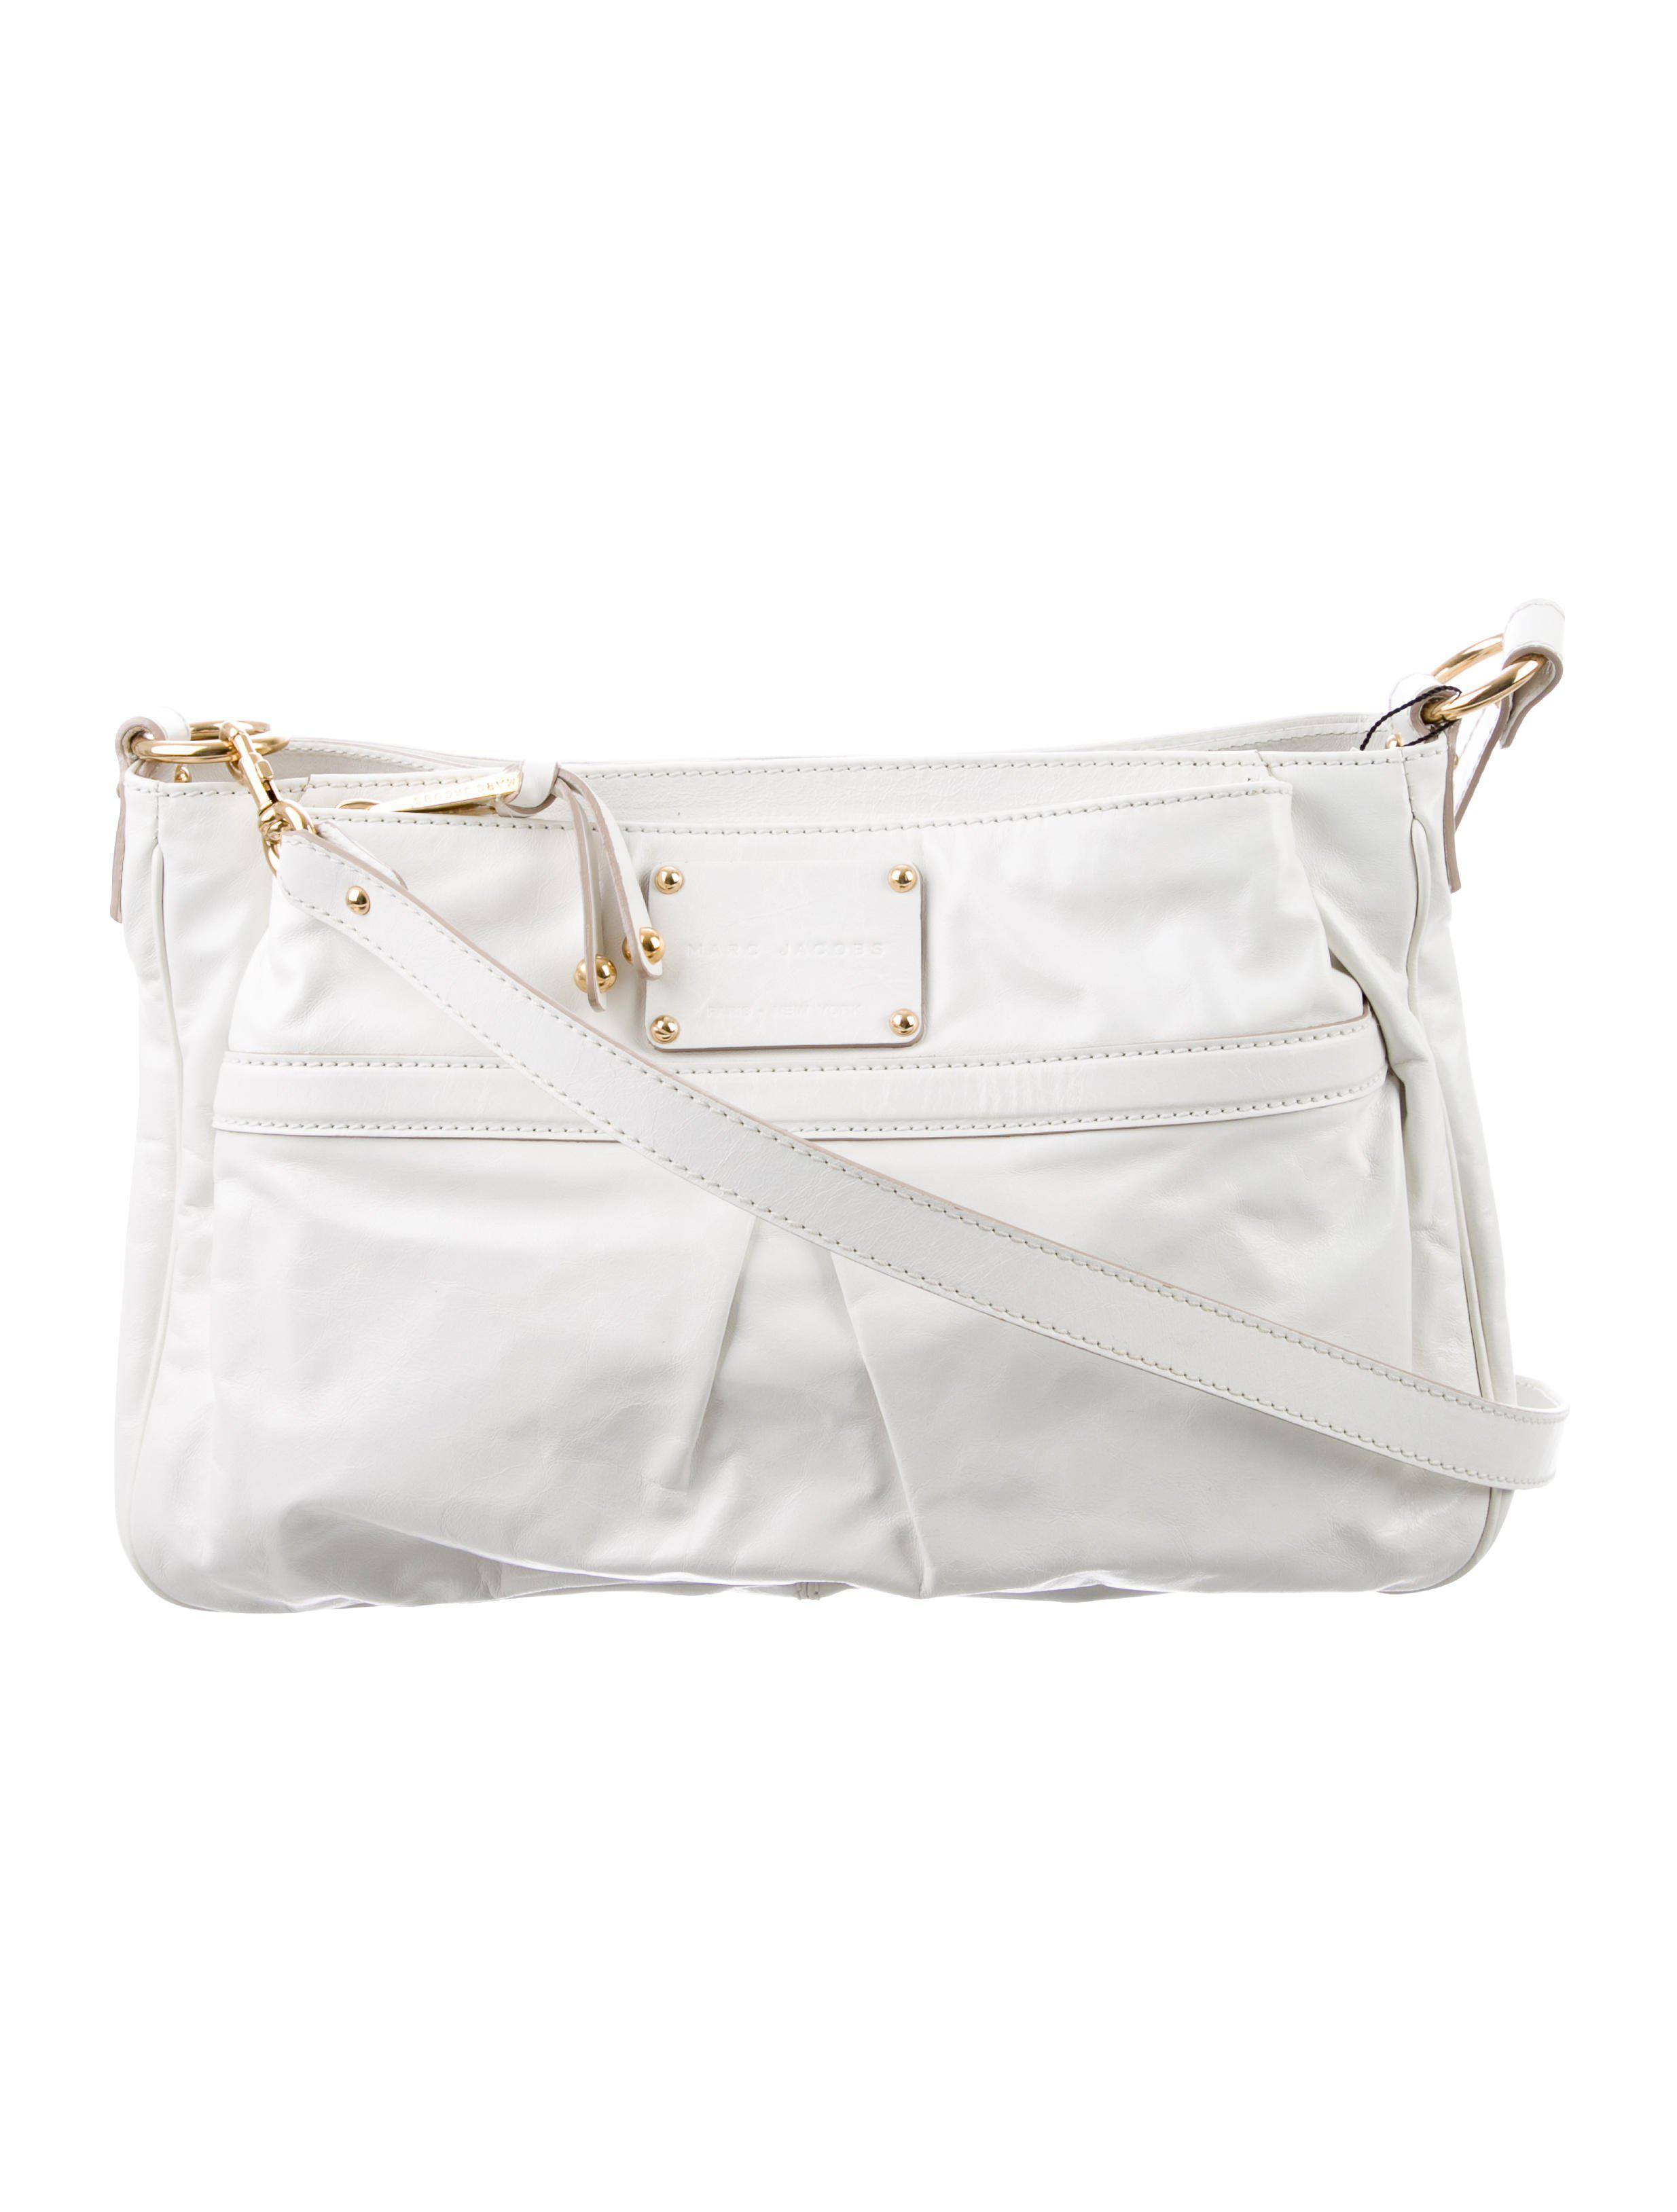 Lyst - Marc Jacobs Pleated Leather Crossbody Bag Gold in Metallic 7999930c0e